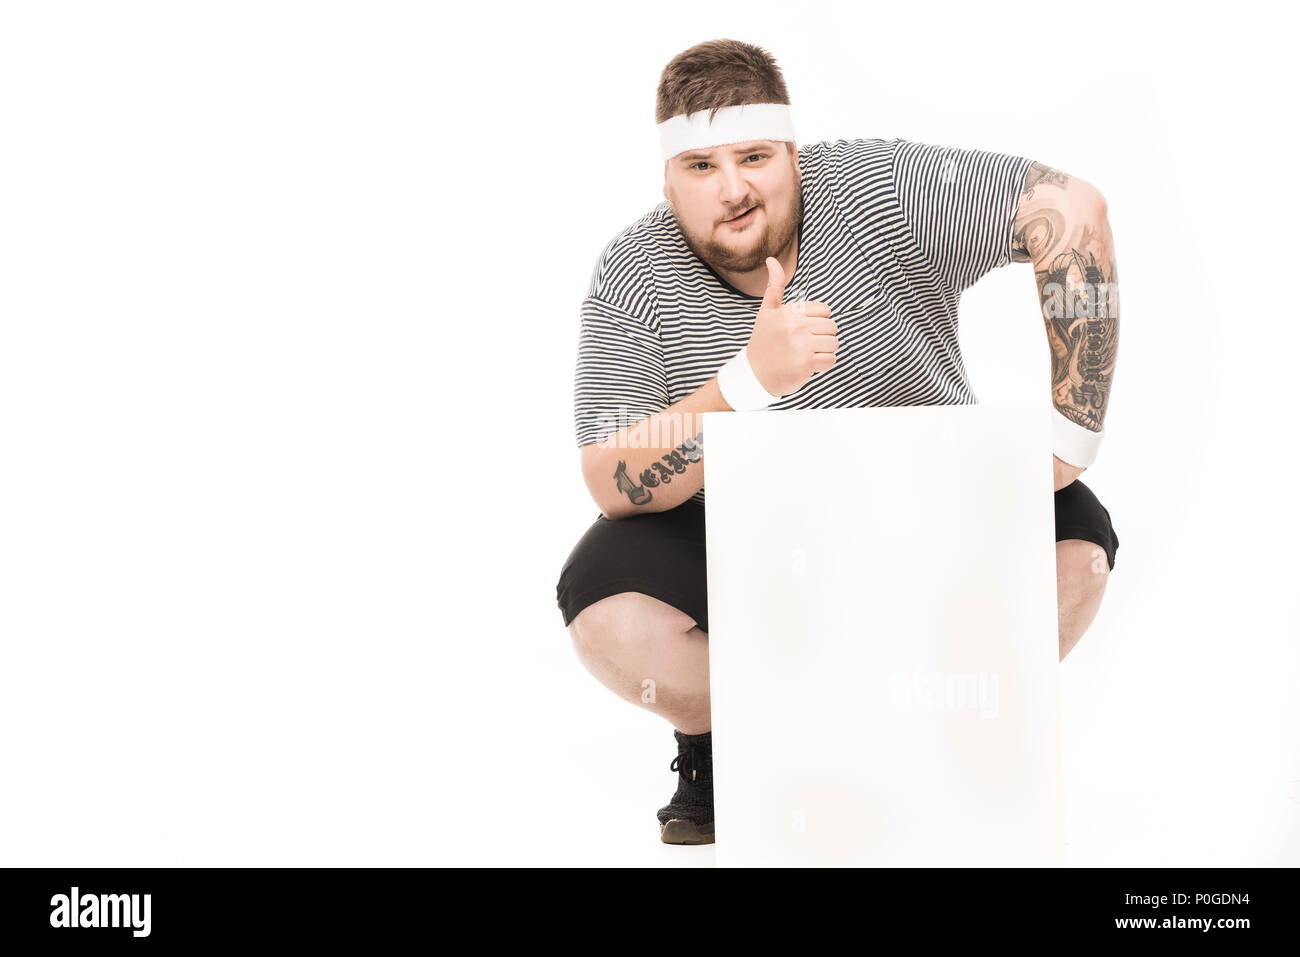 young man showing thumb up while squatting down near empty banner isolated on white - Stock Image